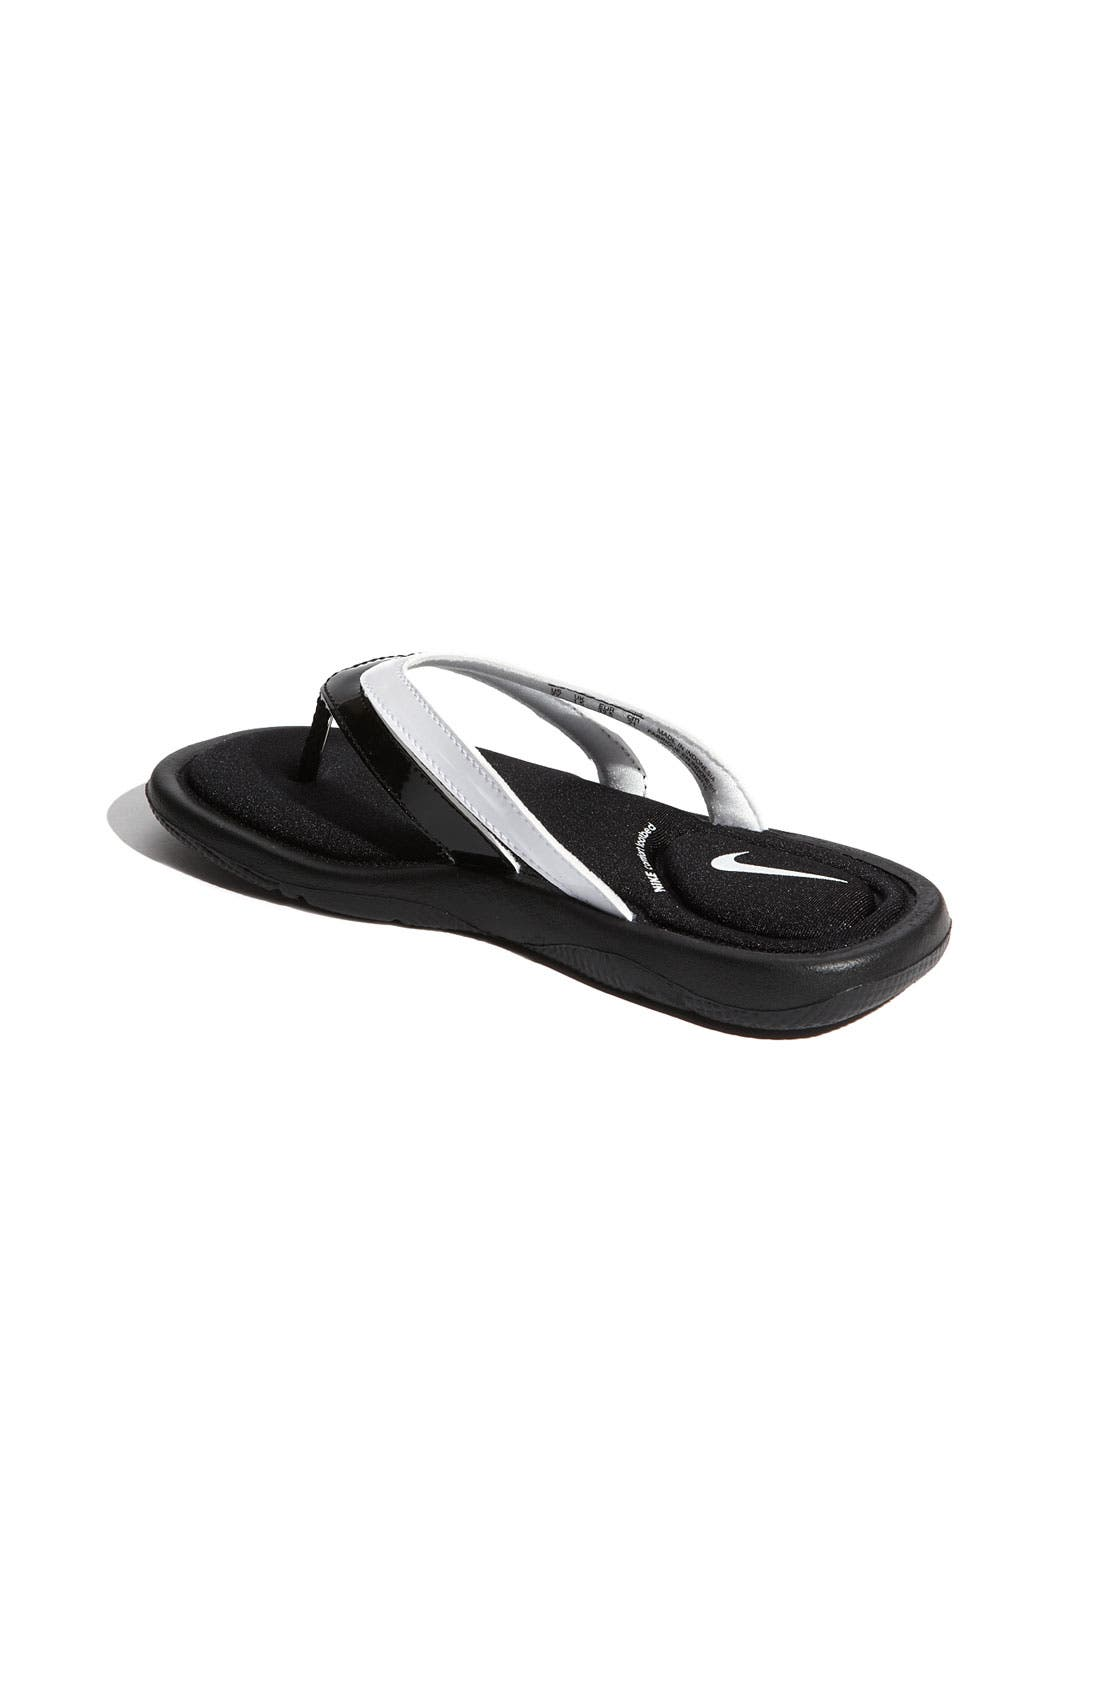 Alternate Image 2  - Nike 'Comfort' Thong Sandal (Toddler, Little Kid & Big Kid)